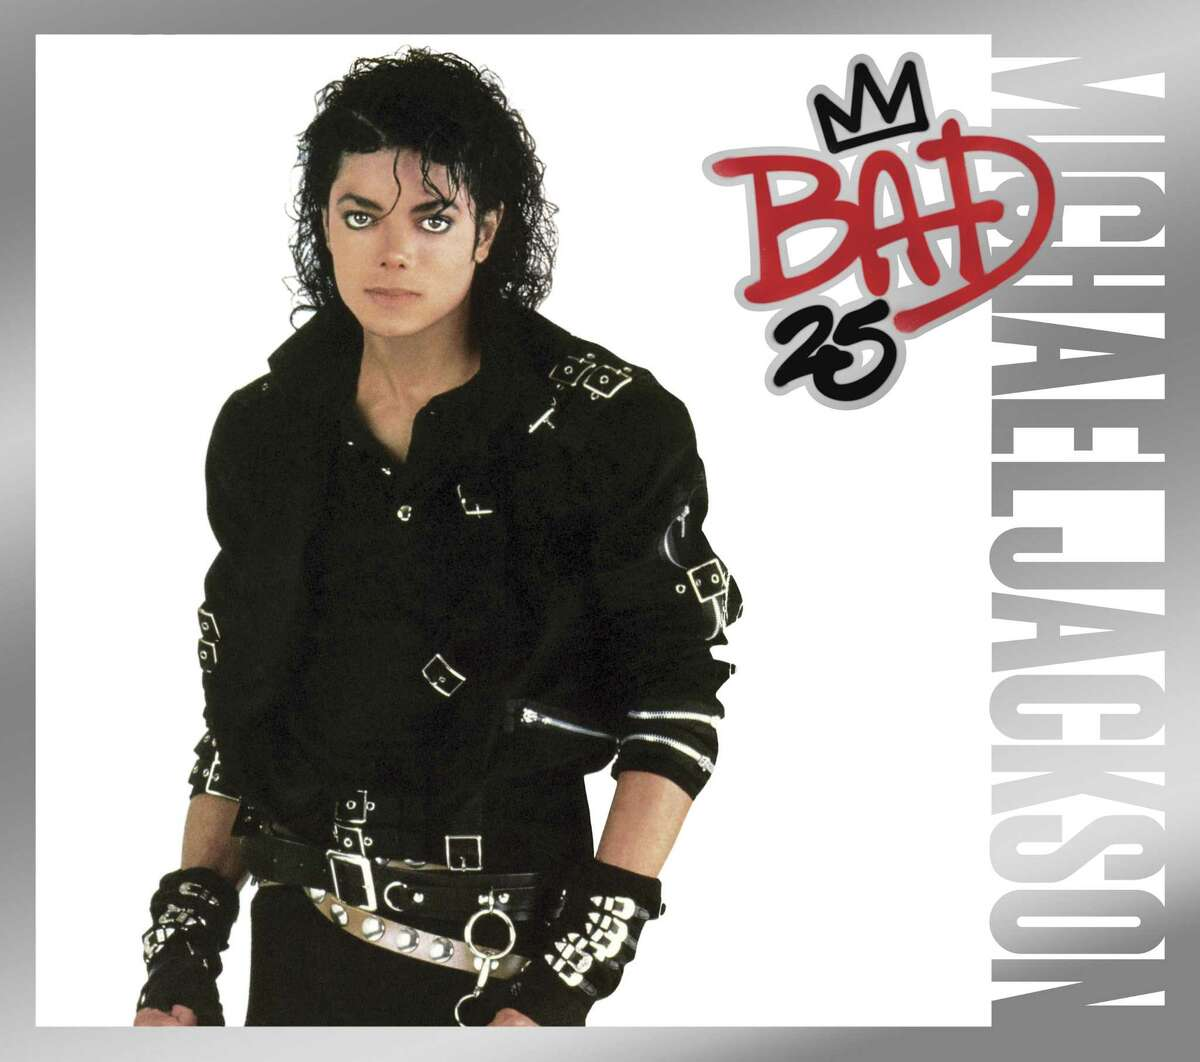 By 1987, when Michael Jackson released